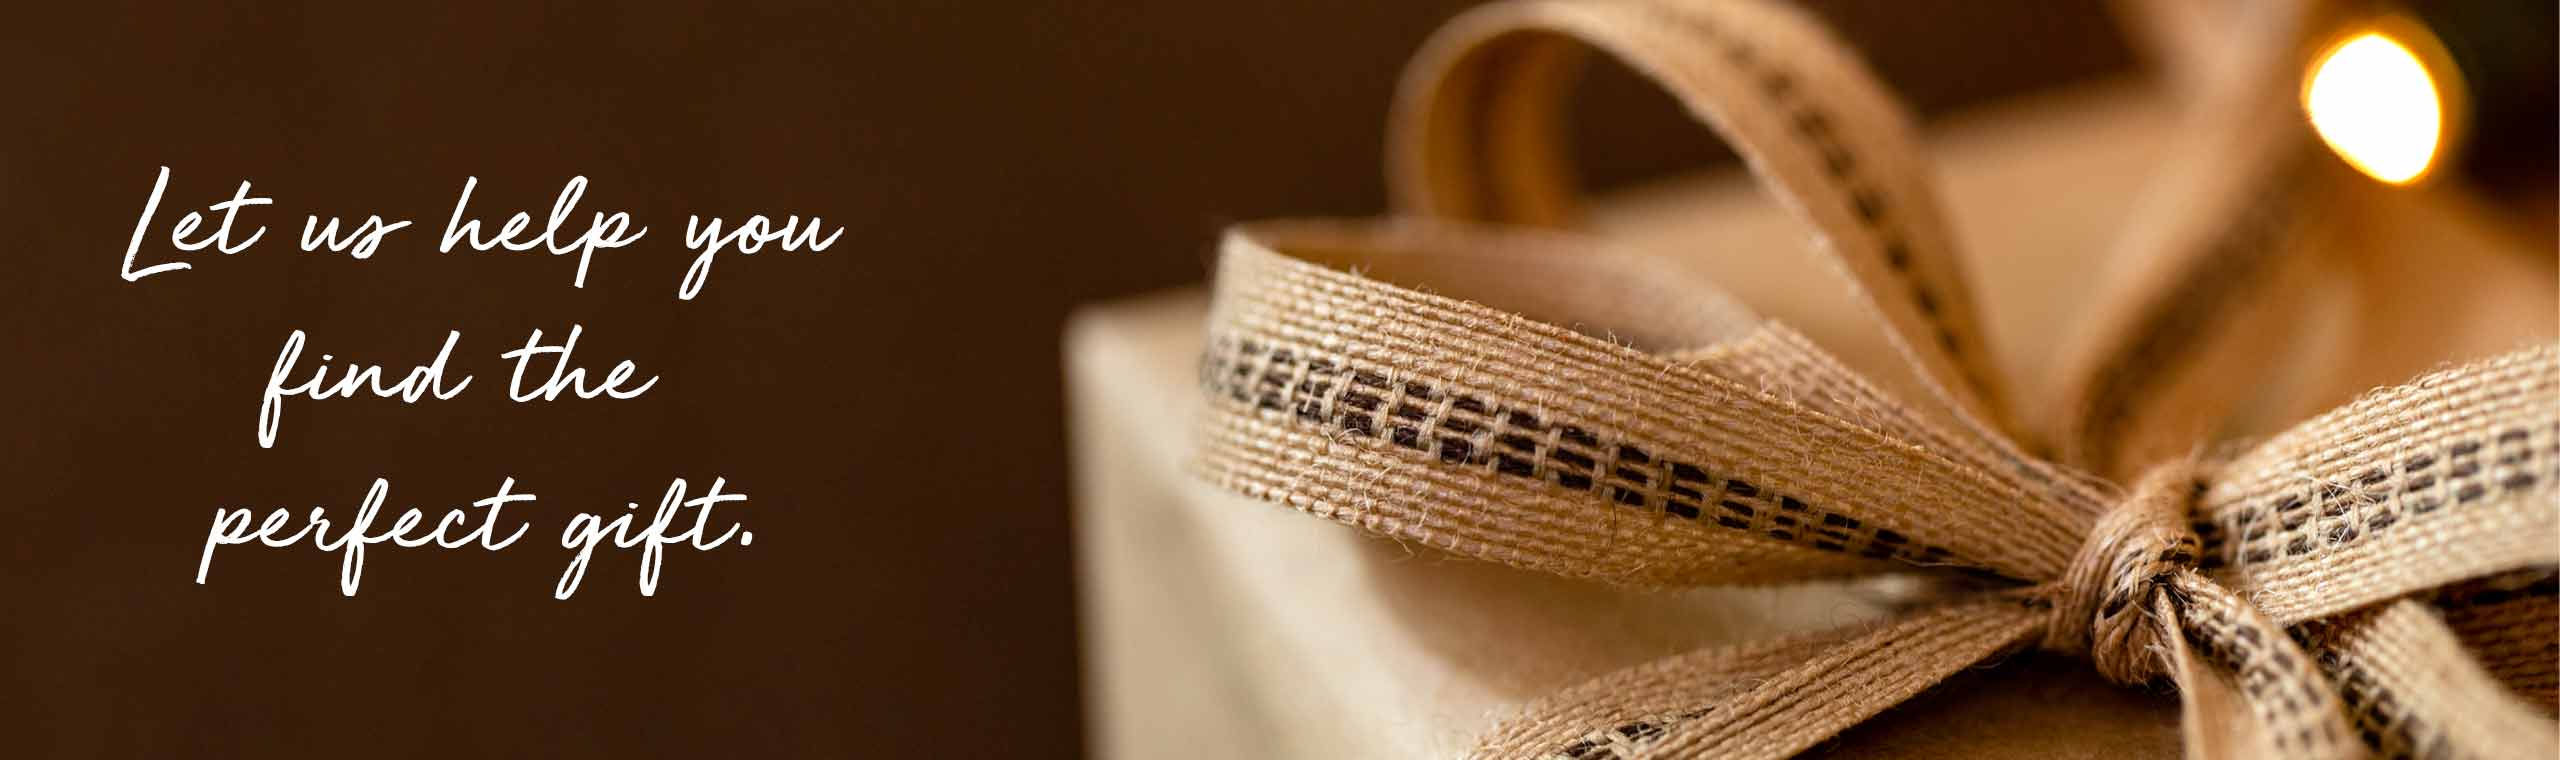 Let us help you find the perfect gift. Gift wrapped in brown paper with a woven brown ribbon.